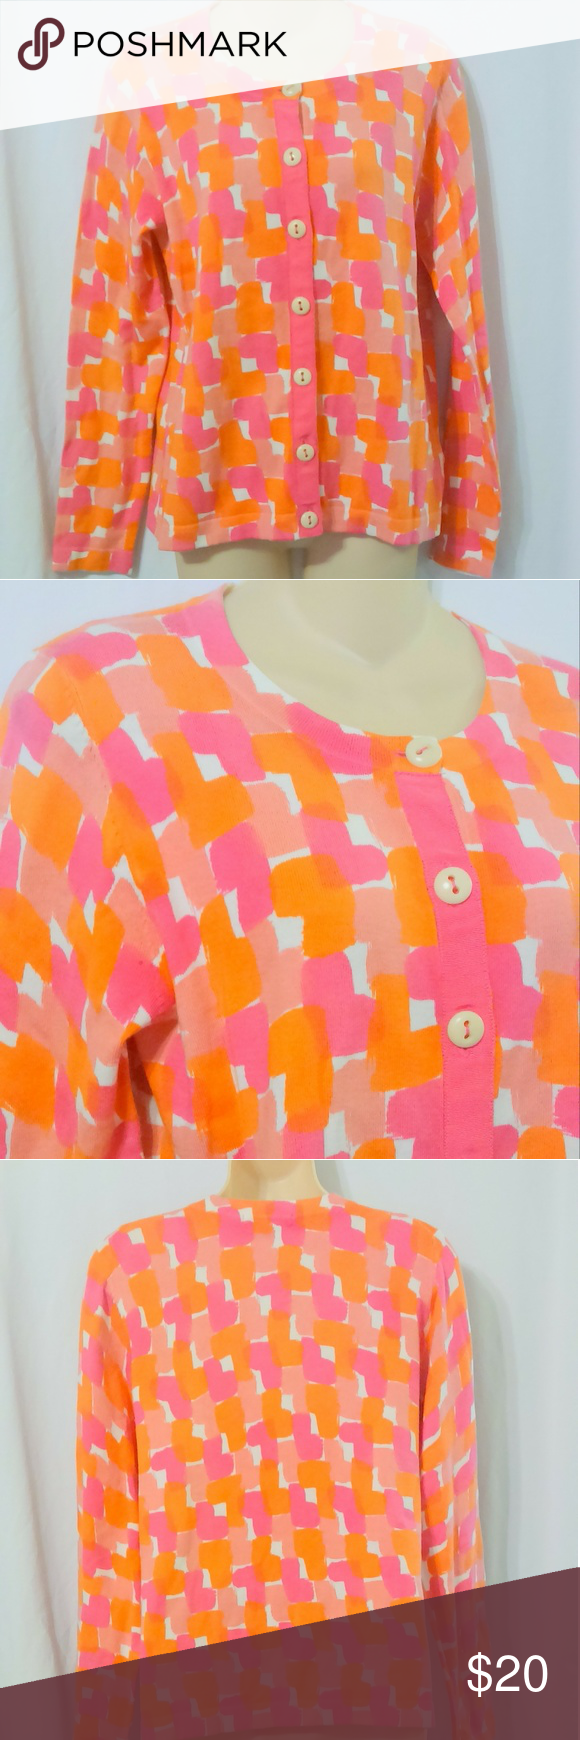 BODEN Hot Pink and Orange Print Cardigan Sweater This orange and ...